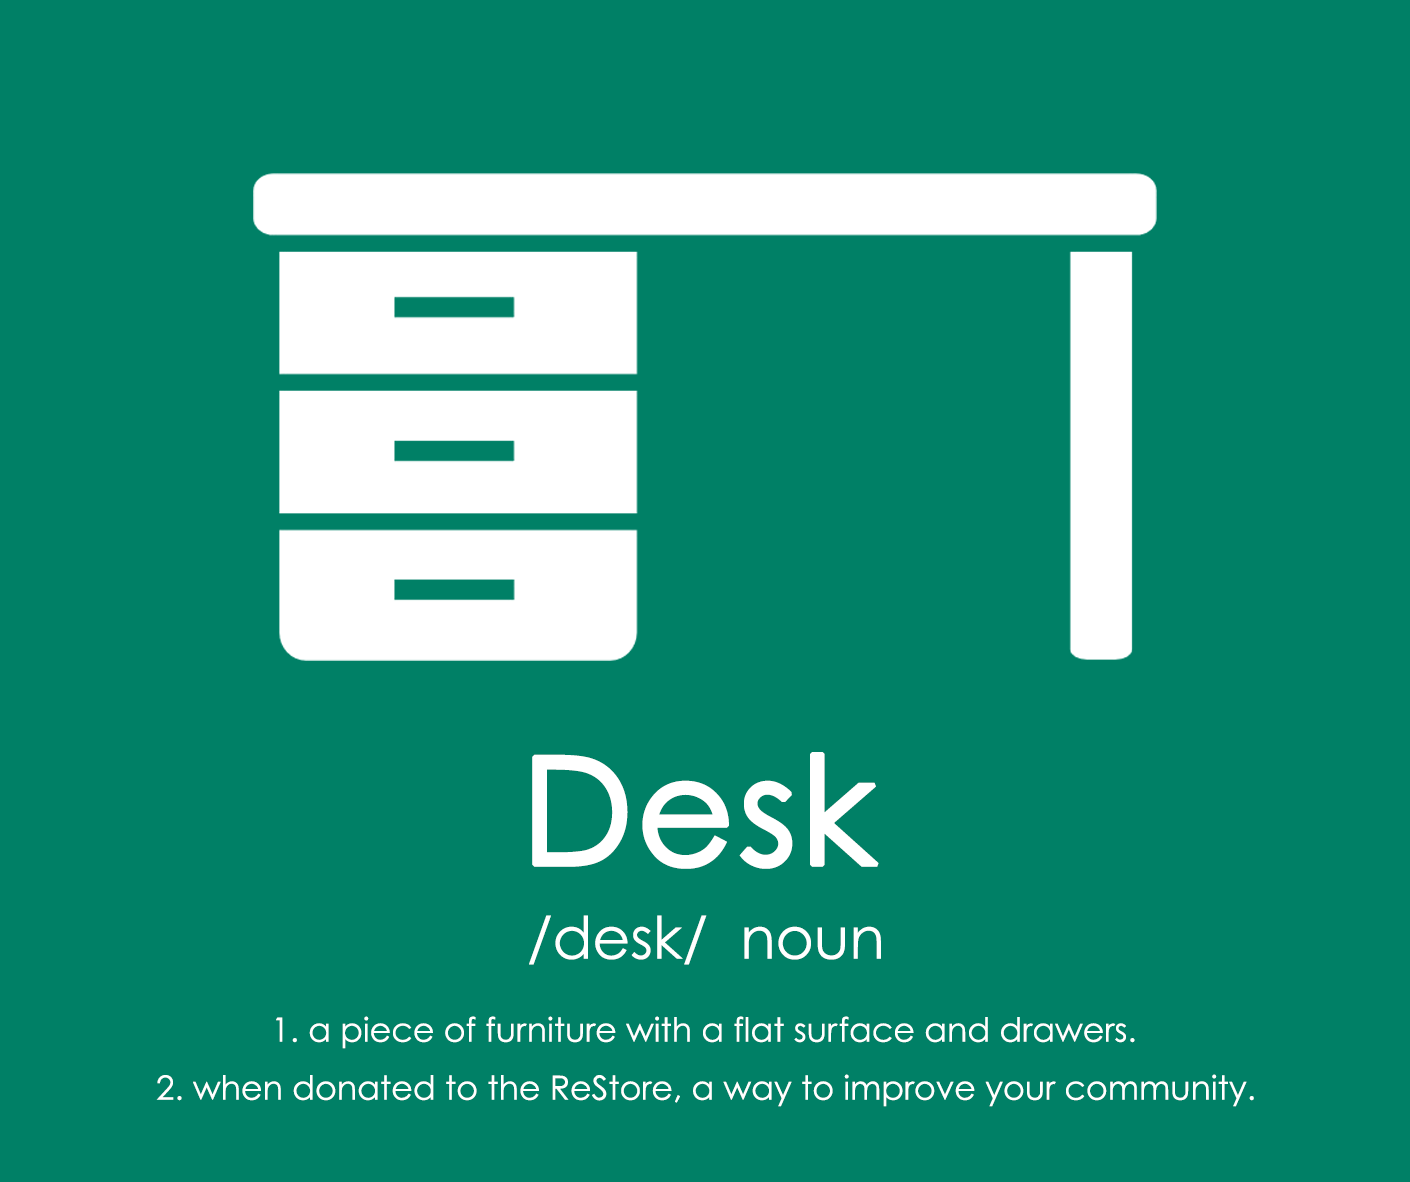 The Richmond ReStore is rewriting the dictionary. The Desk is now a way to improve our community! Learn more: bit.ly/19fjFlx